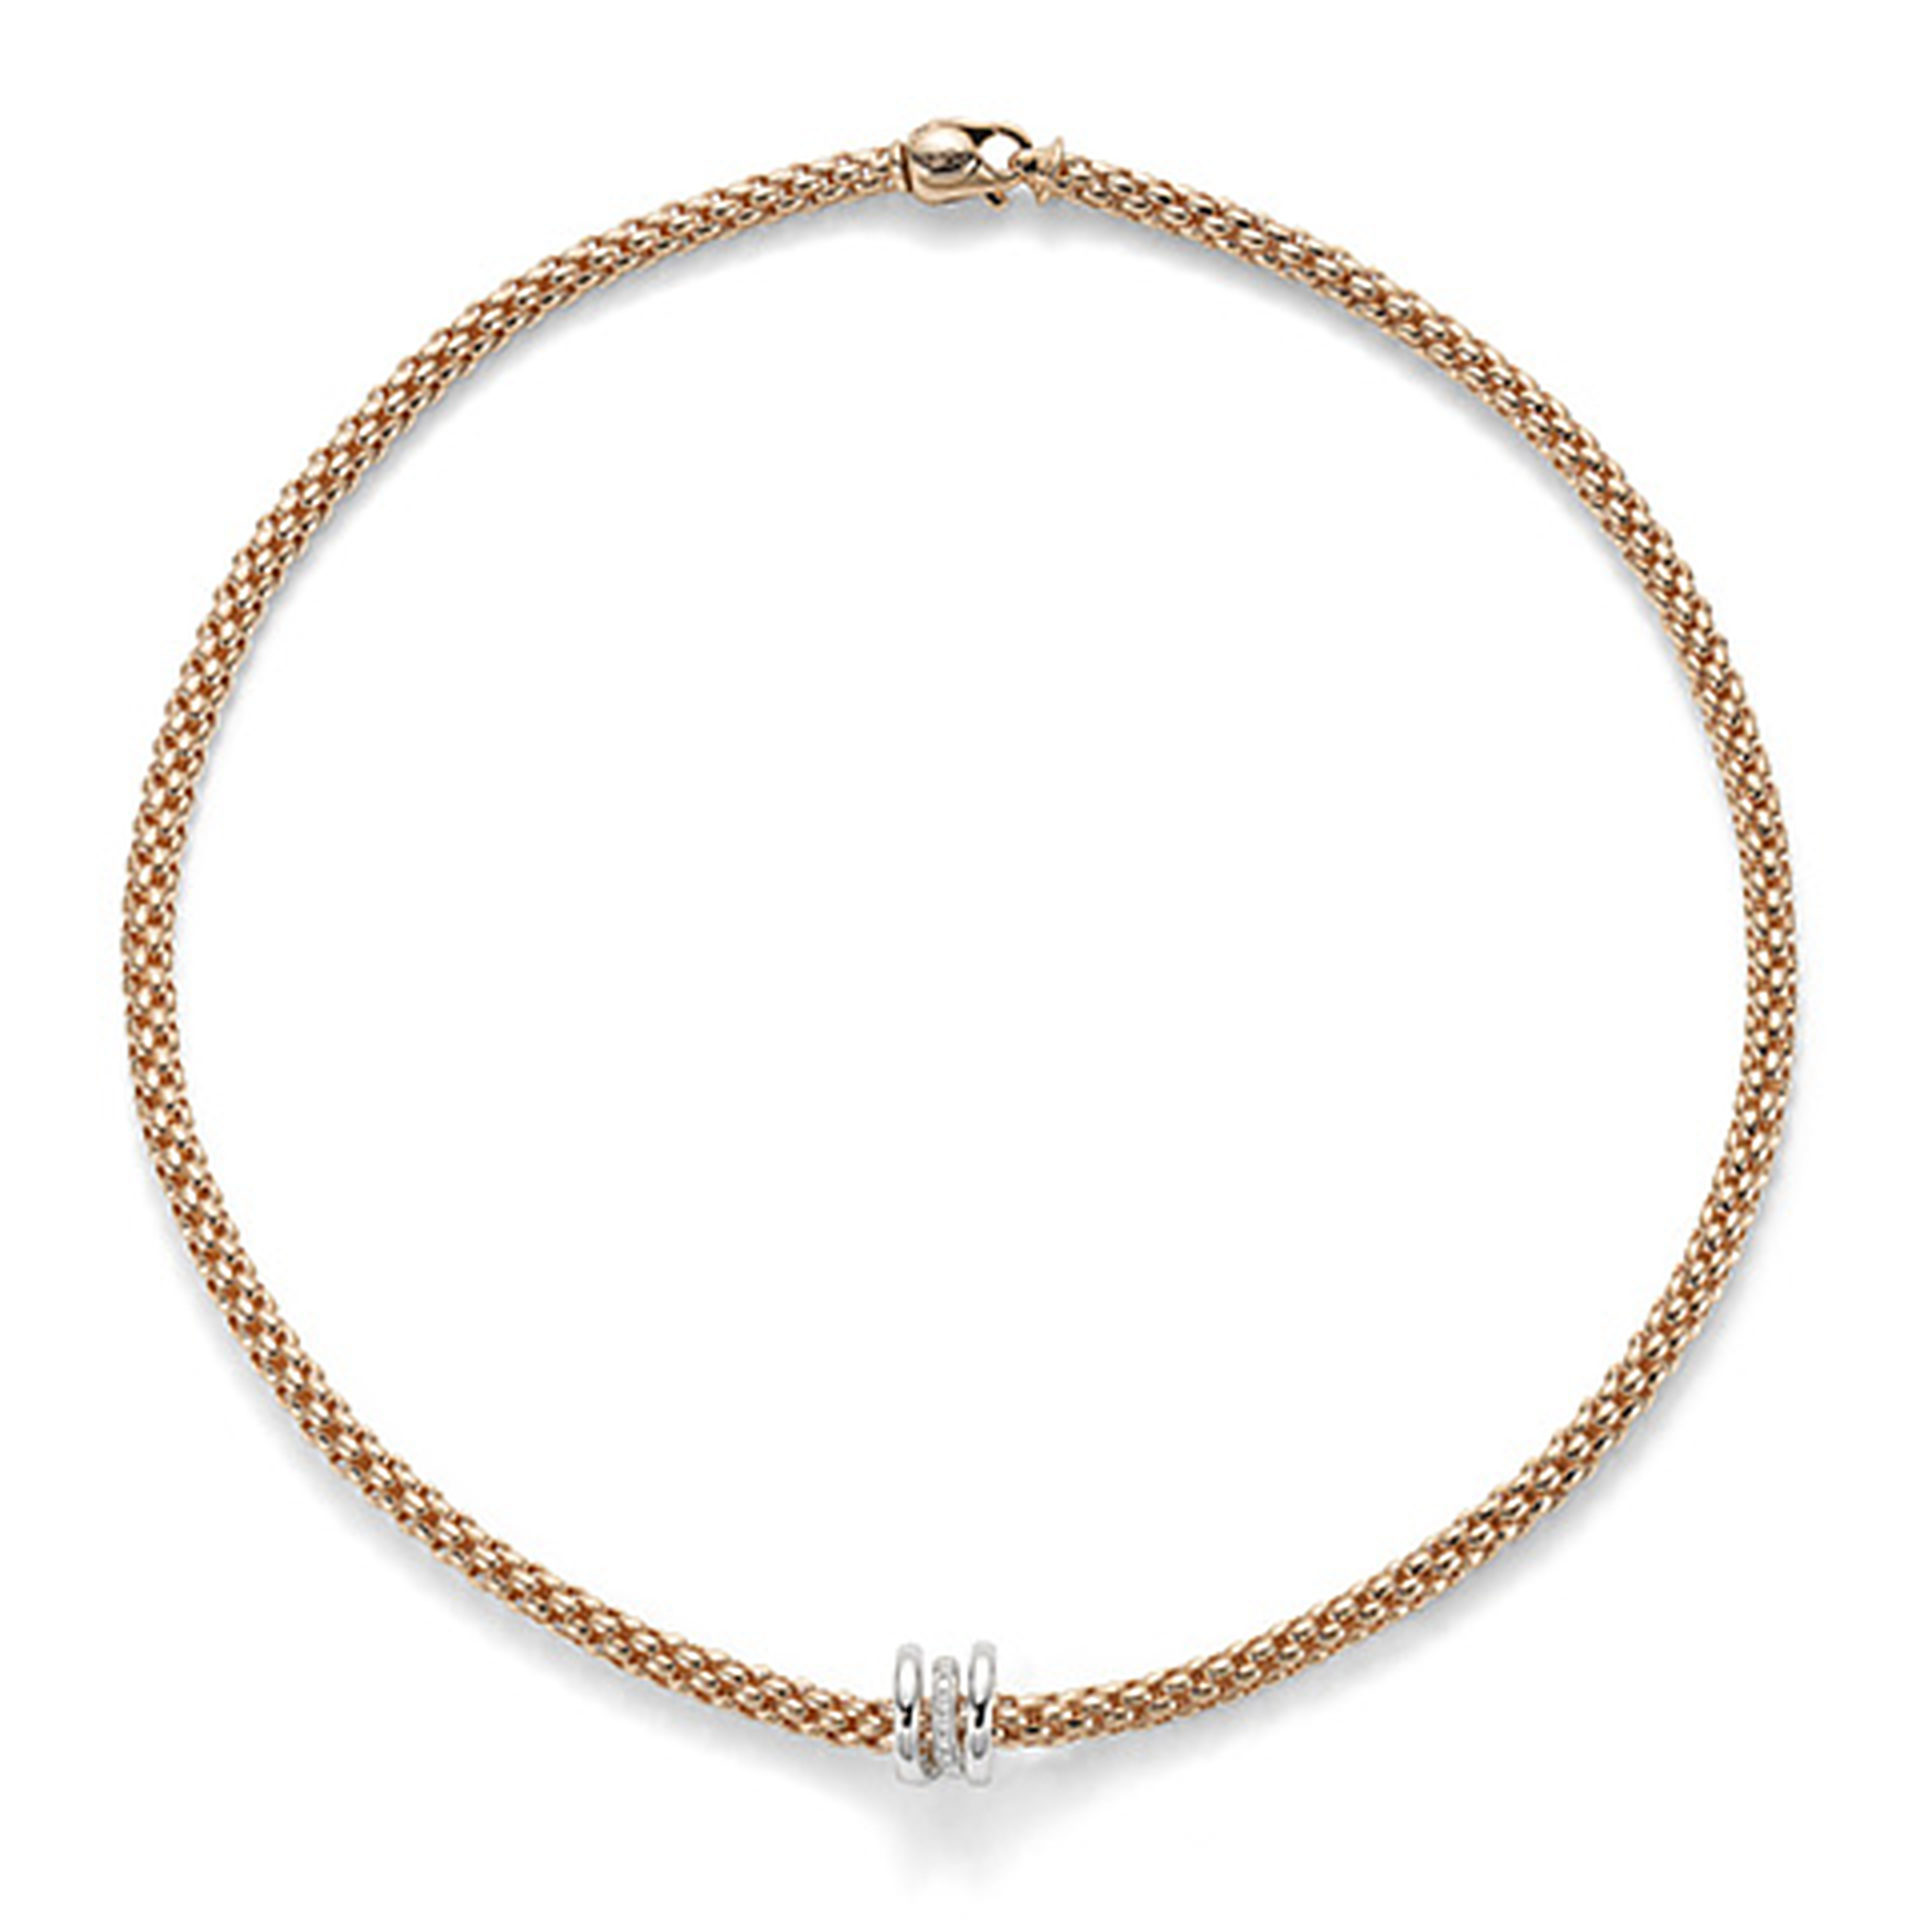 Fope 18ct Rose Gold Flex'It Solo Diamond Necklet